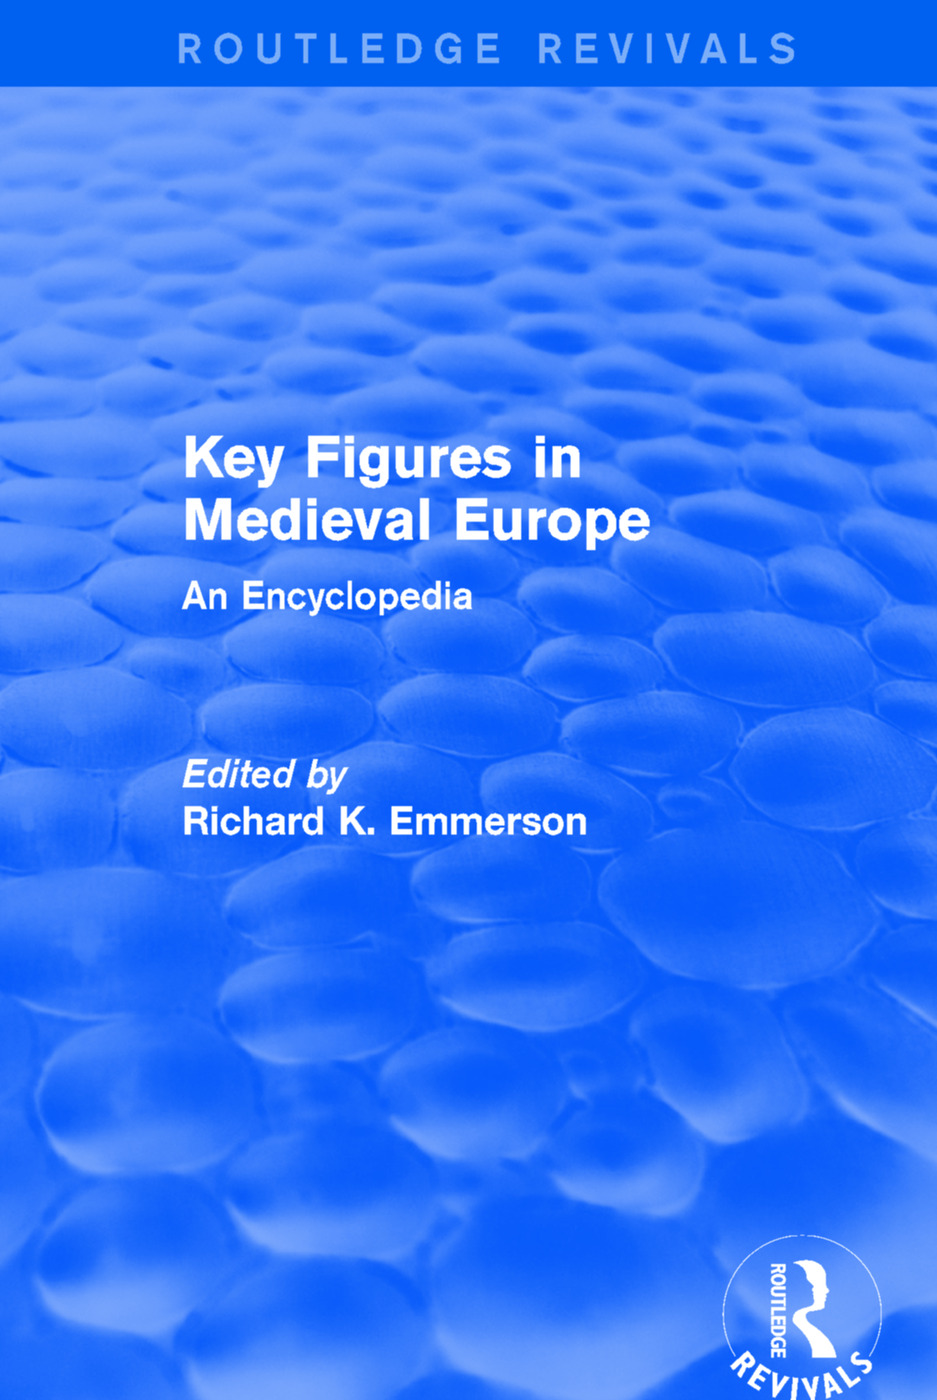 Routledge Revivals: Key Figures in Medieval Europe (2006)